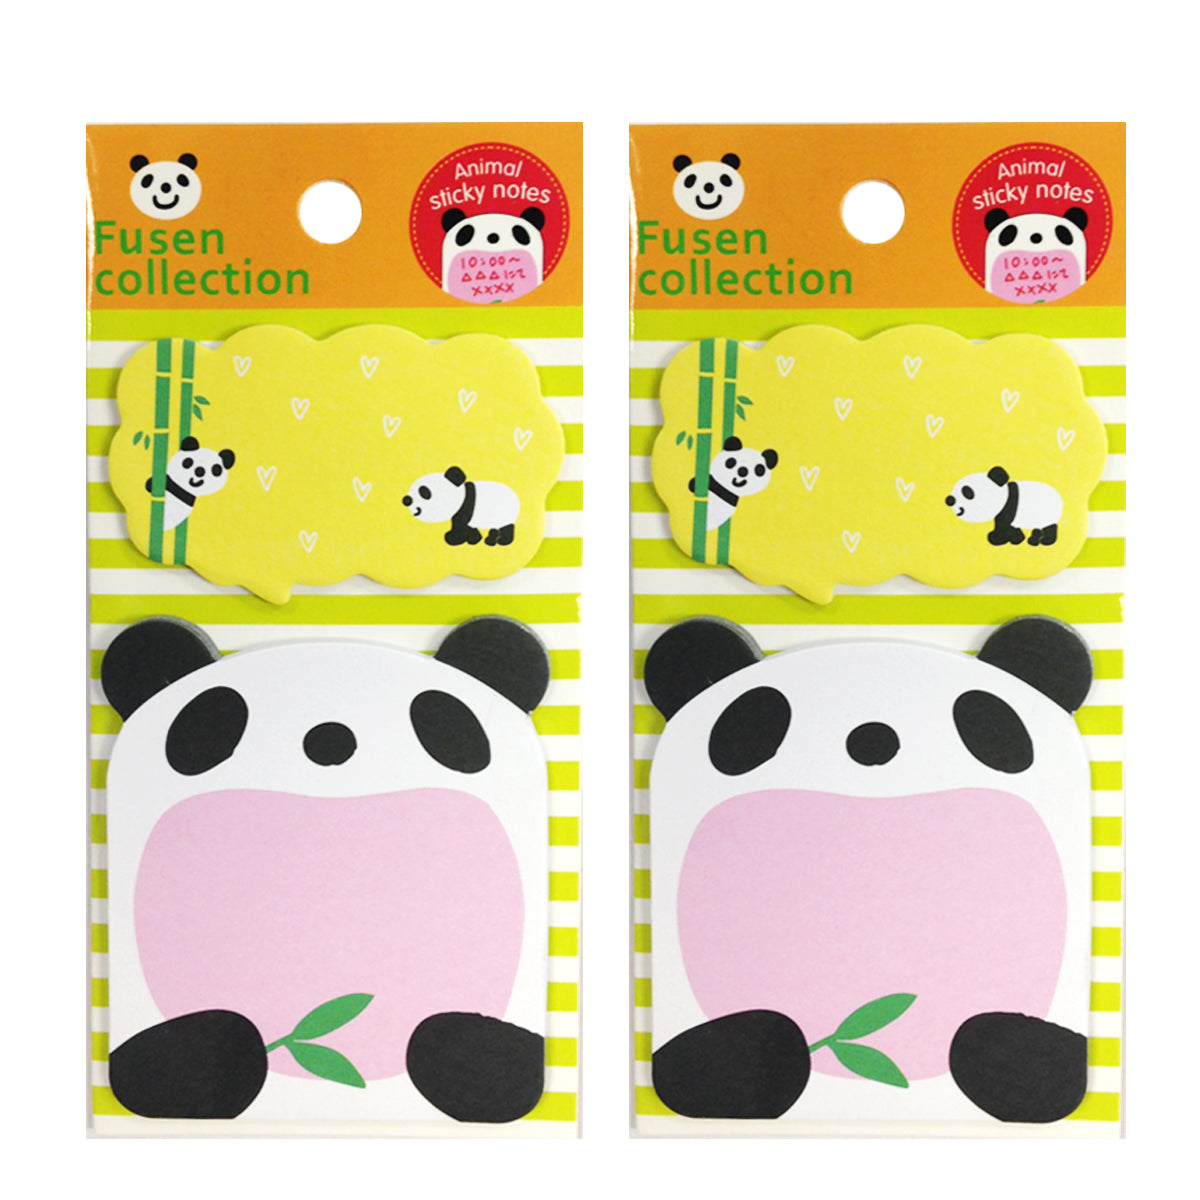 Wrapables Talking Animal Memo Bookmark Sticky Notes (Set of 2)